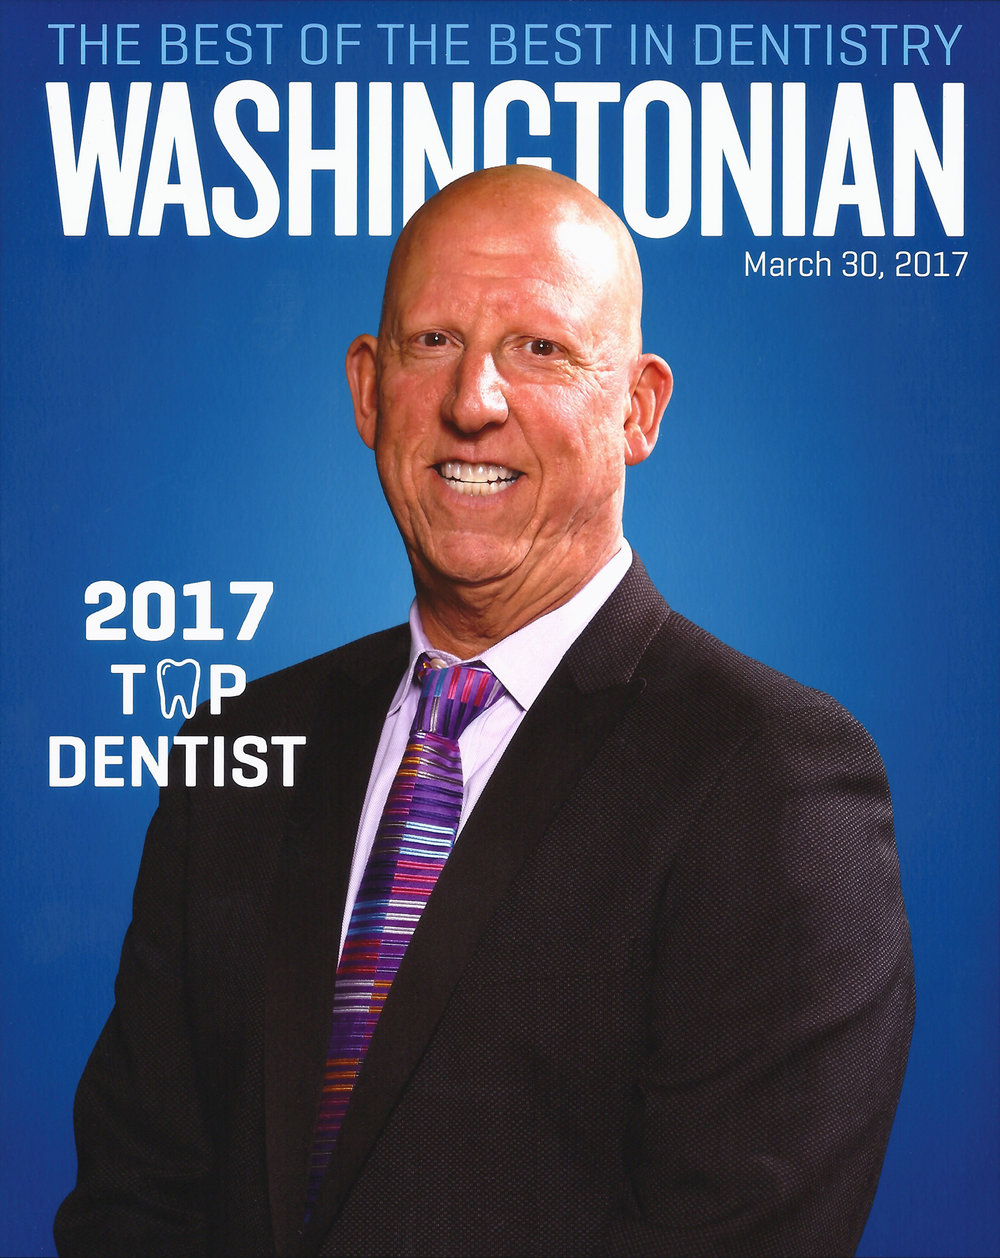 - Dr. Progebin has been featured in several magazines and has been recognized as one of Washington DC's Top Dentists by the Washingtonian since 1997.